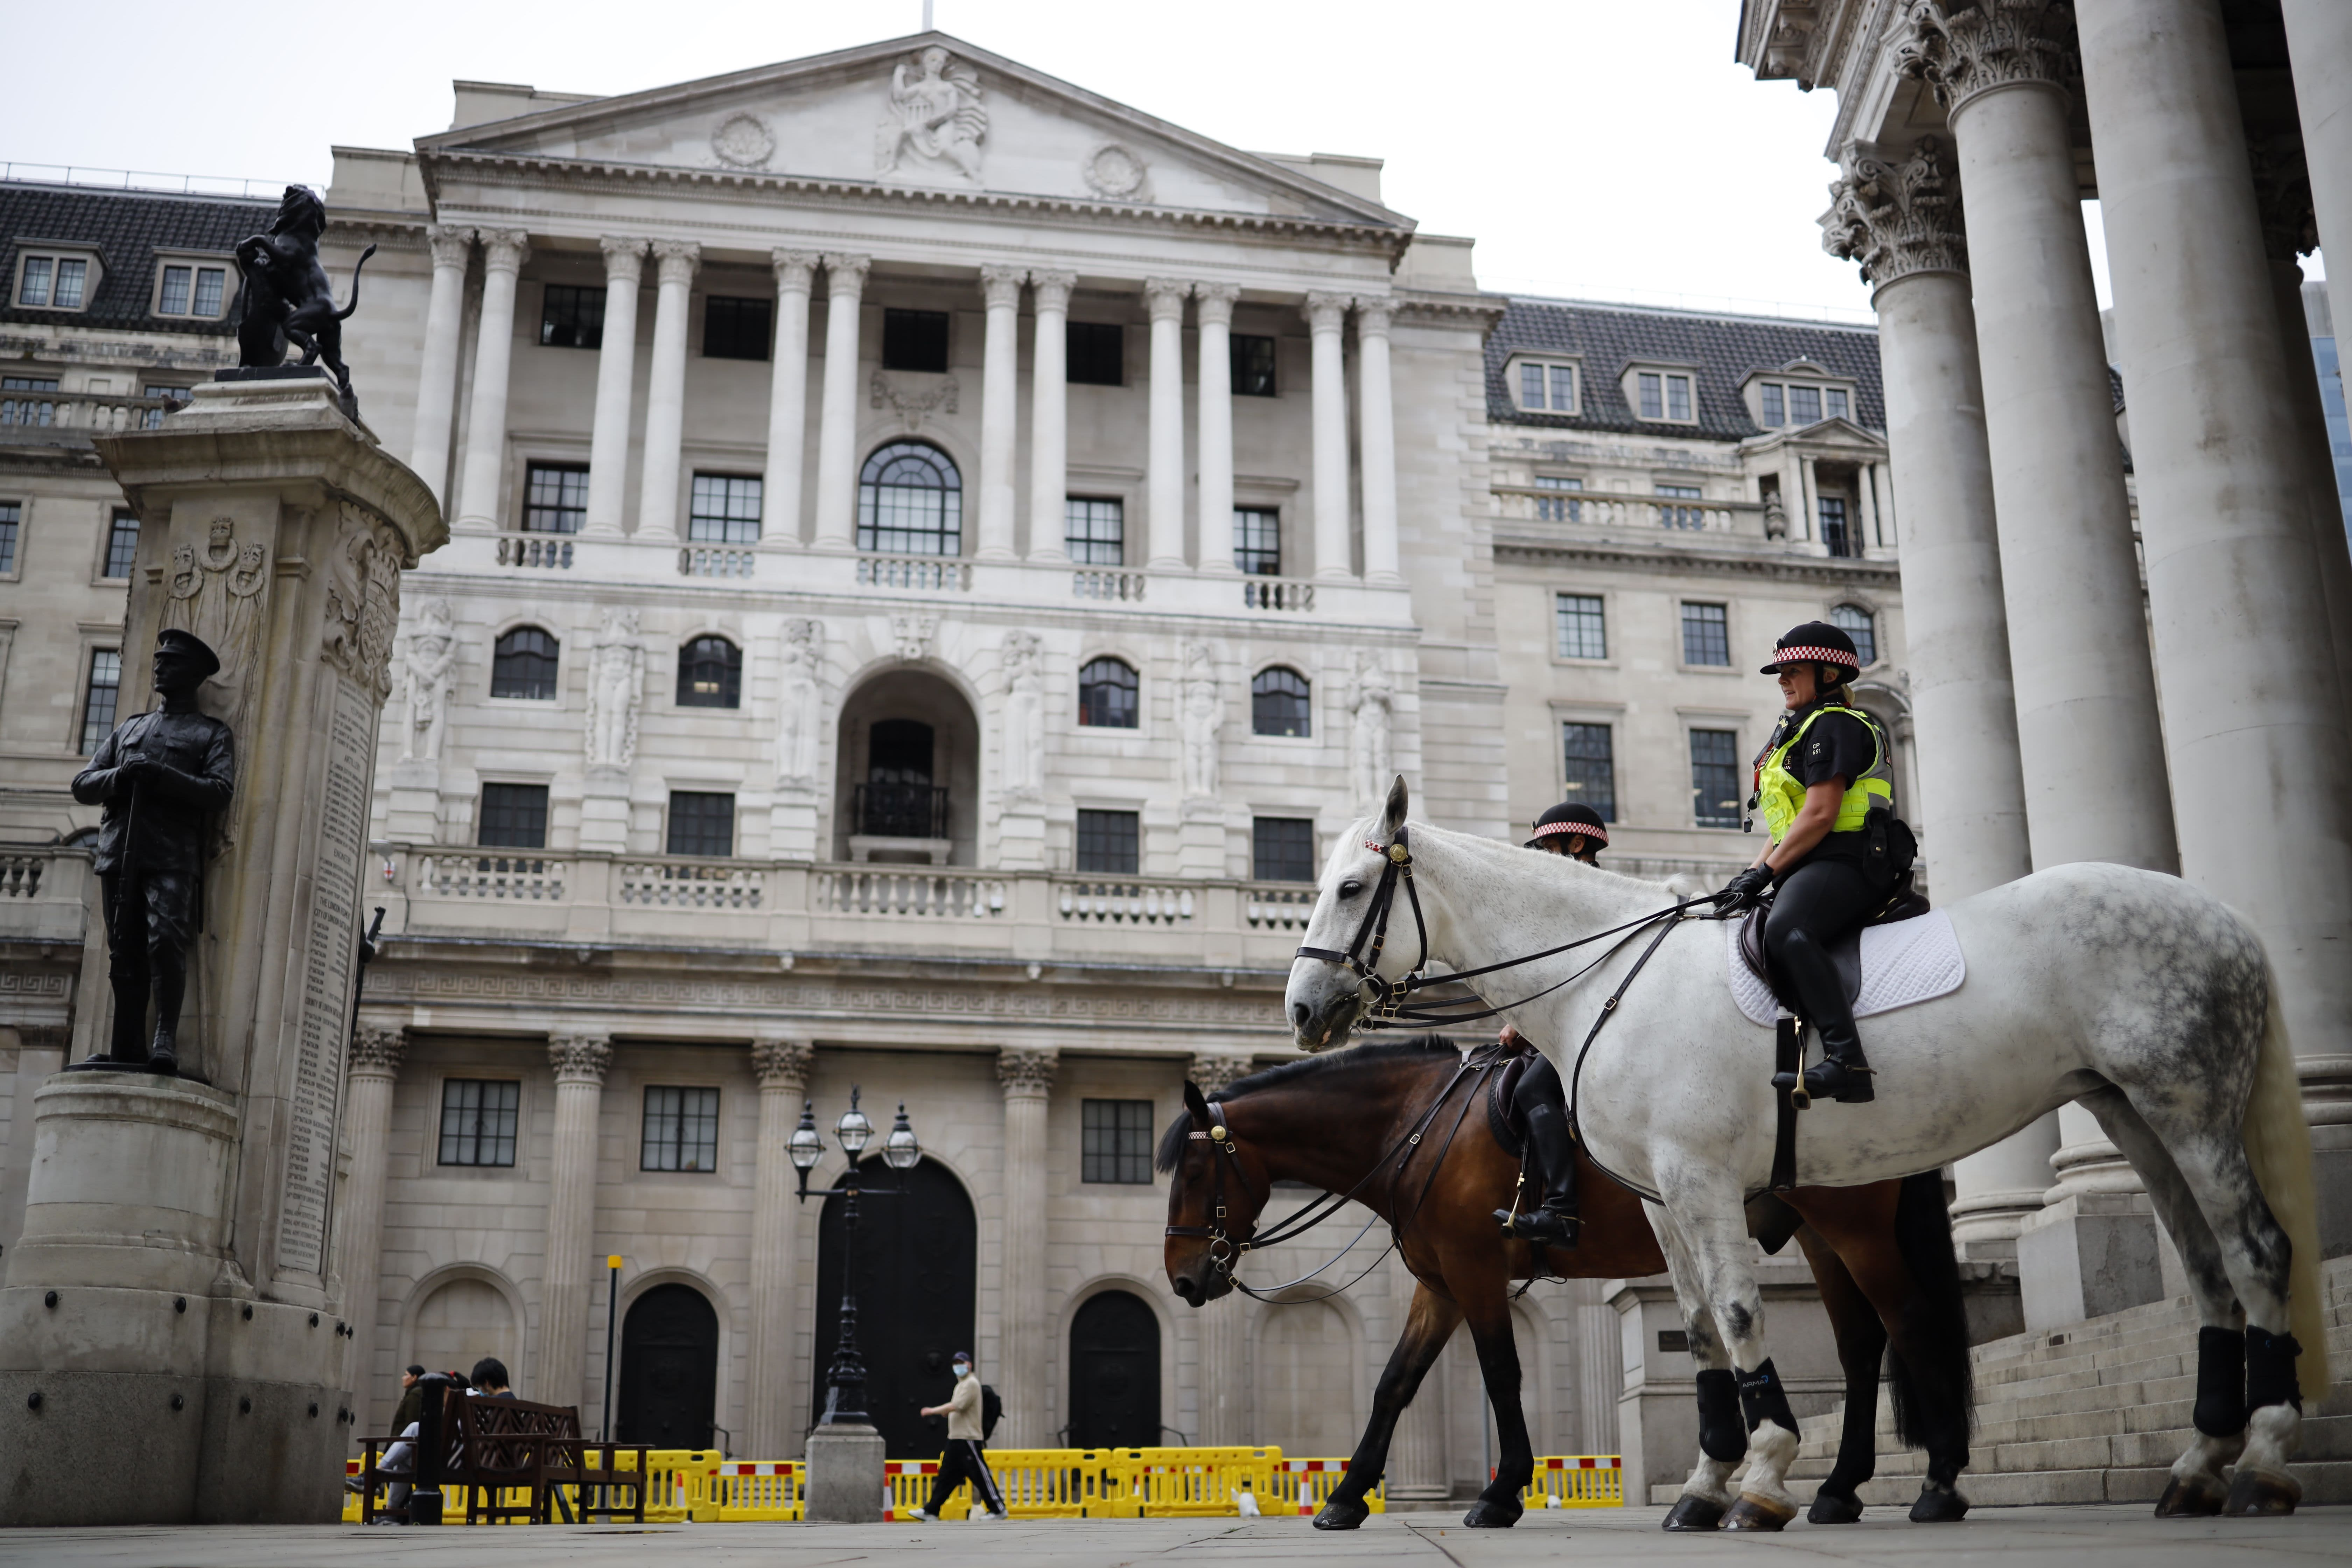 Bank of England holds rates steady as UK navigates second wave fears and Brexit talks - CNBC